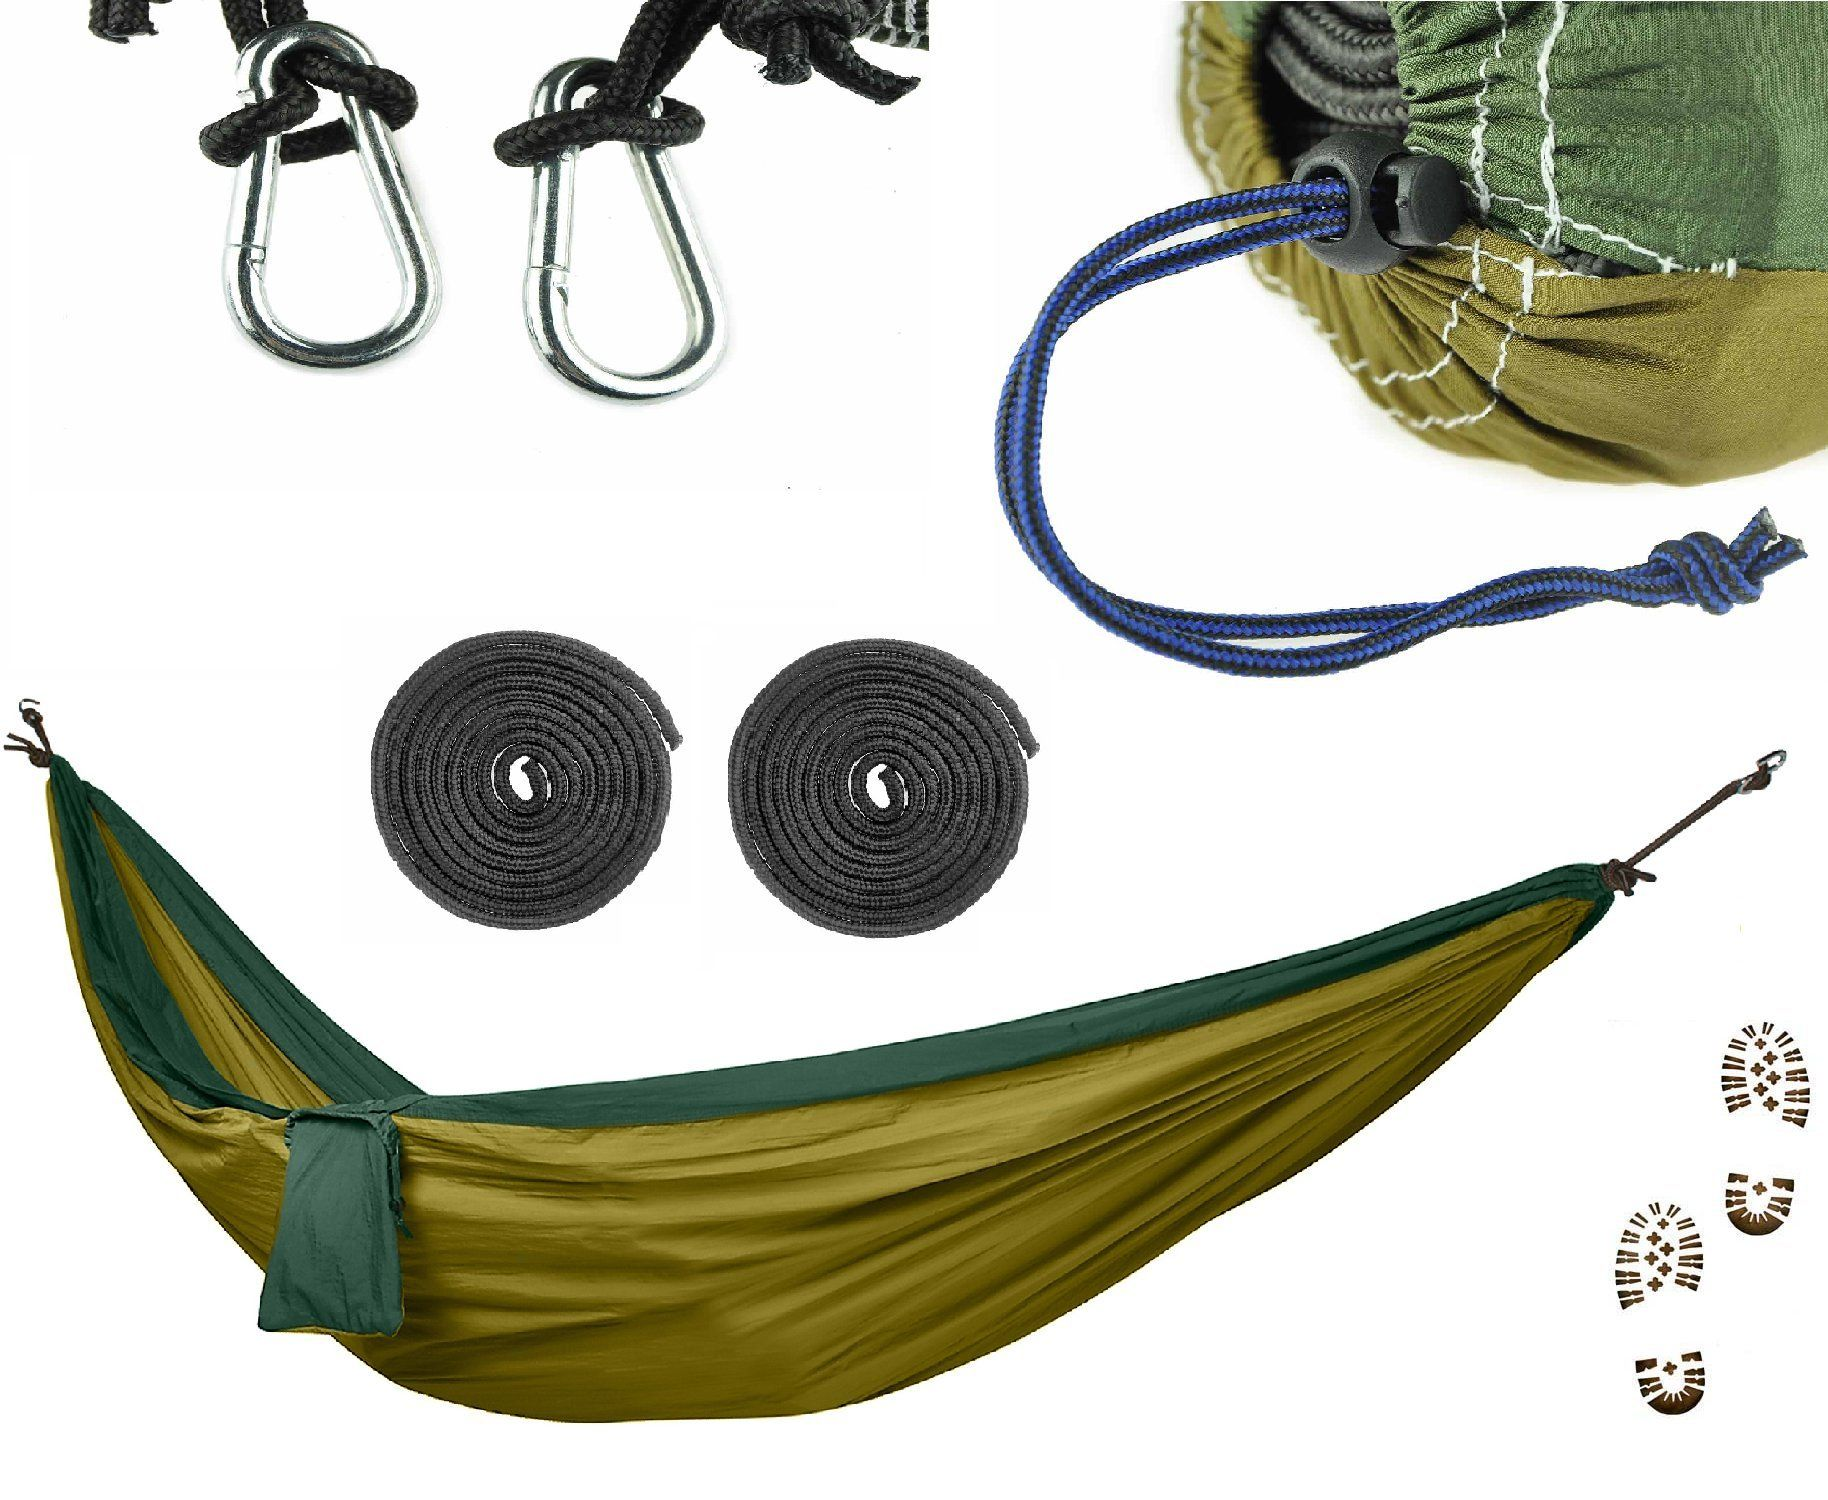 Commando steve camping hammock set ultralight military grade